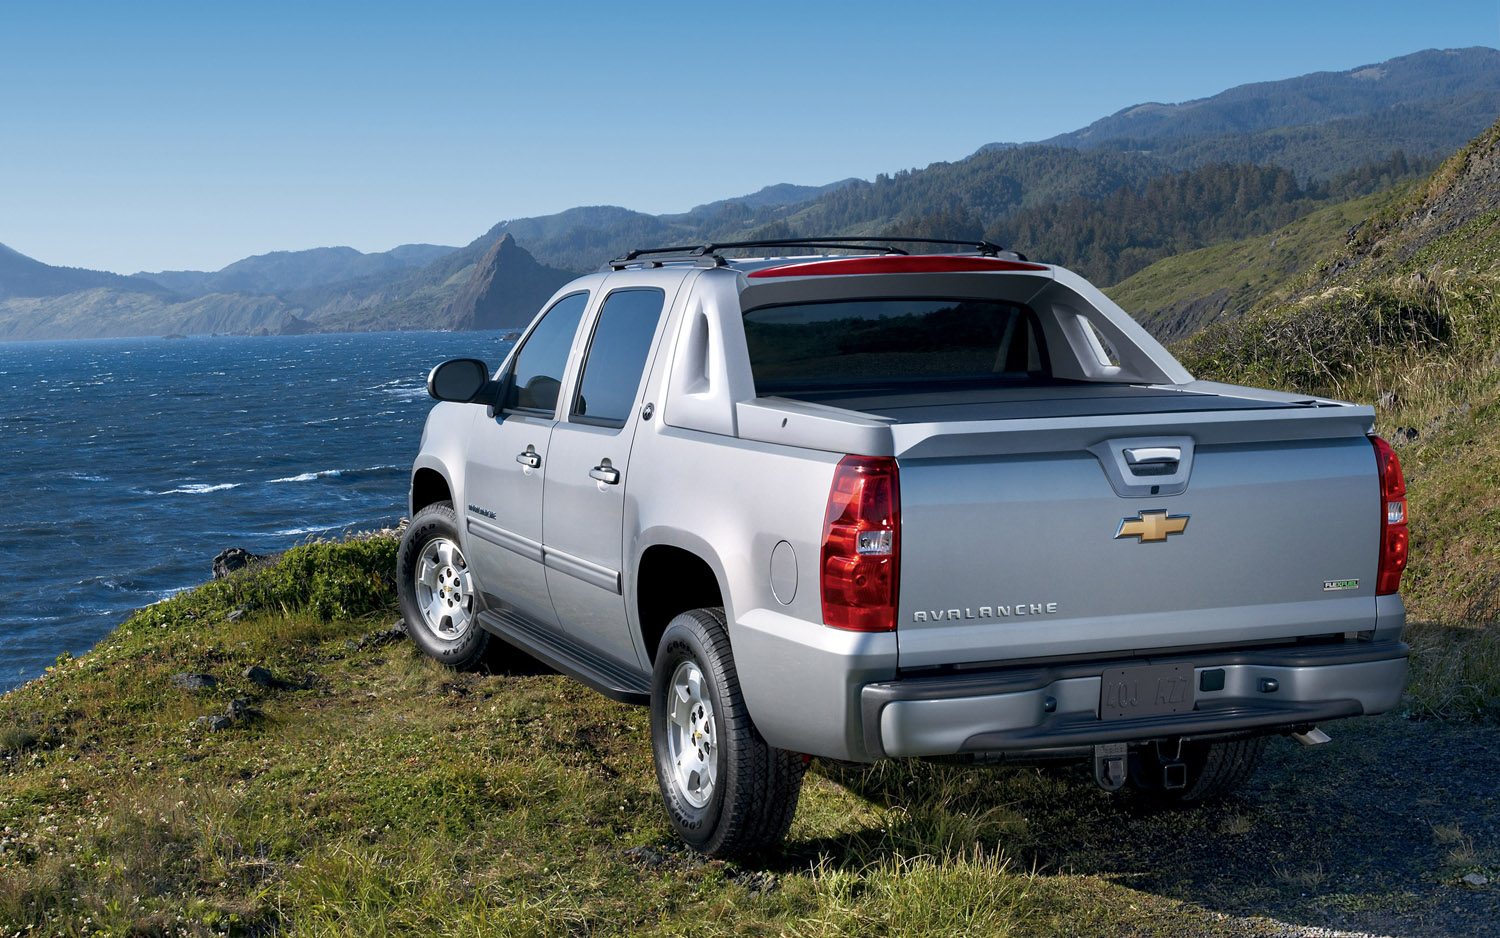 Chevrolet Avalanche Will Be No More After 2013 Model Year